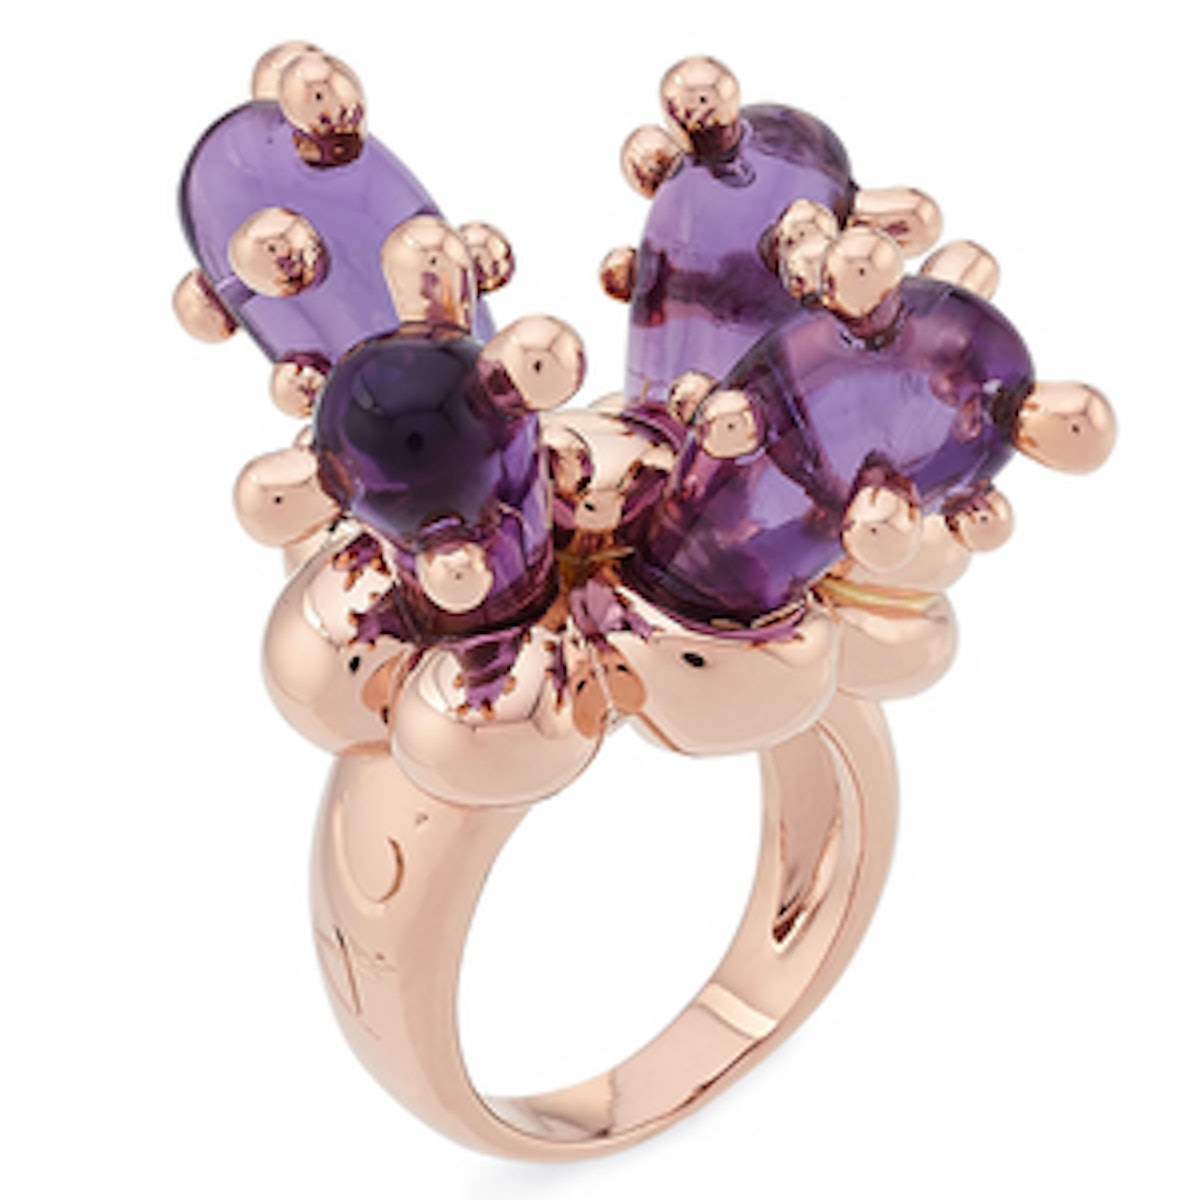 8kt Pink Gold Cactus Ring with Amethyst